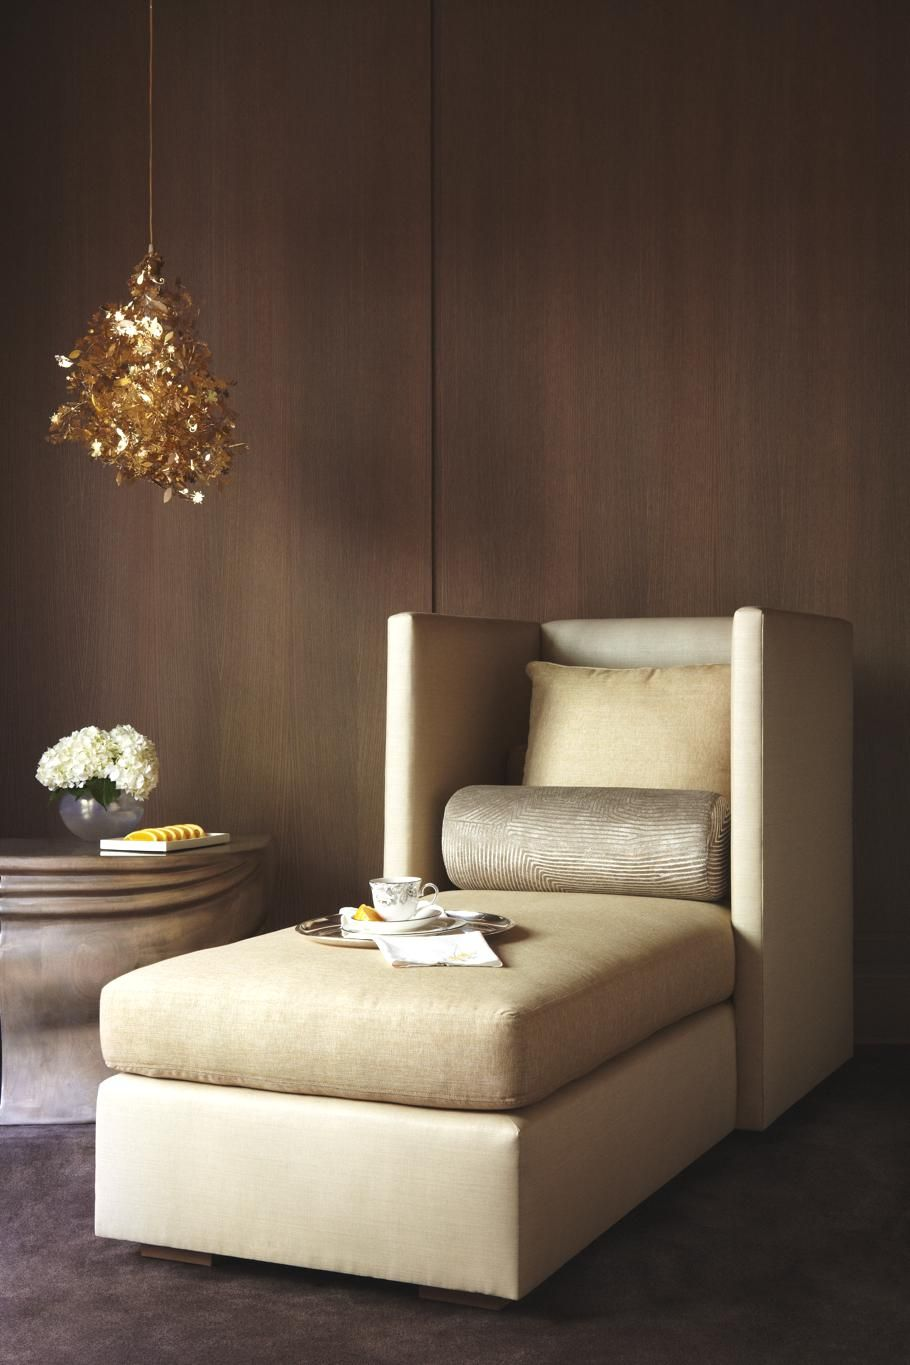 Exotic Hotel Rooms: Luxury-Hotel-Bel-Air-Dorchester-Collection 6